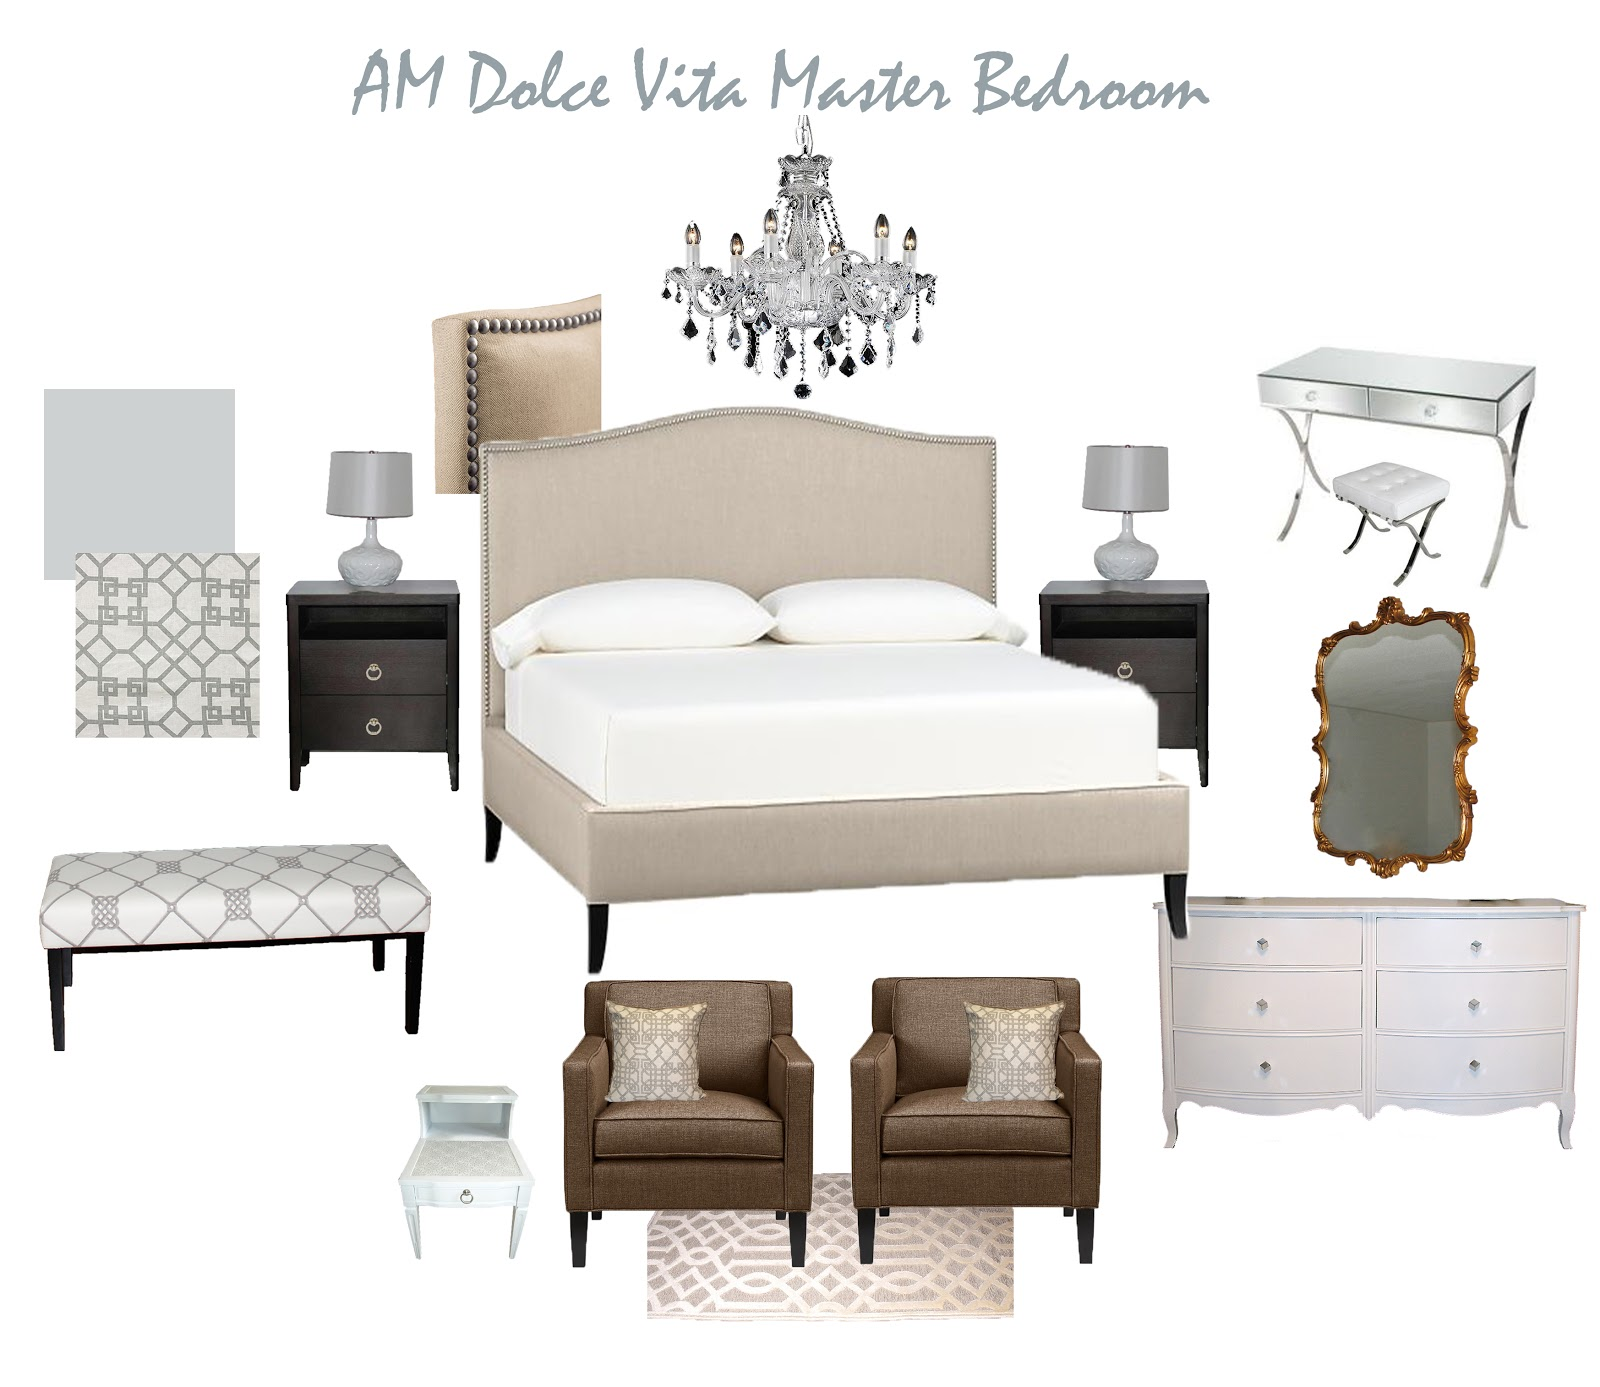 Am Dolce Vita Master Bedroom